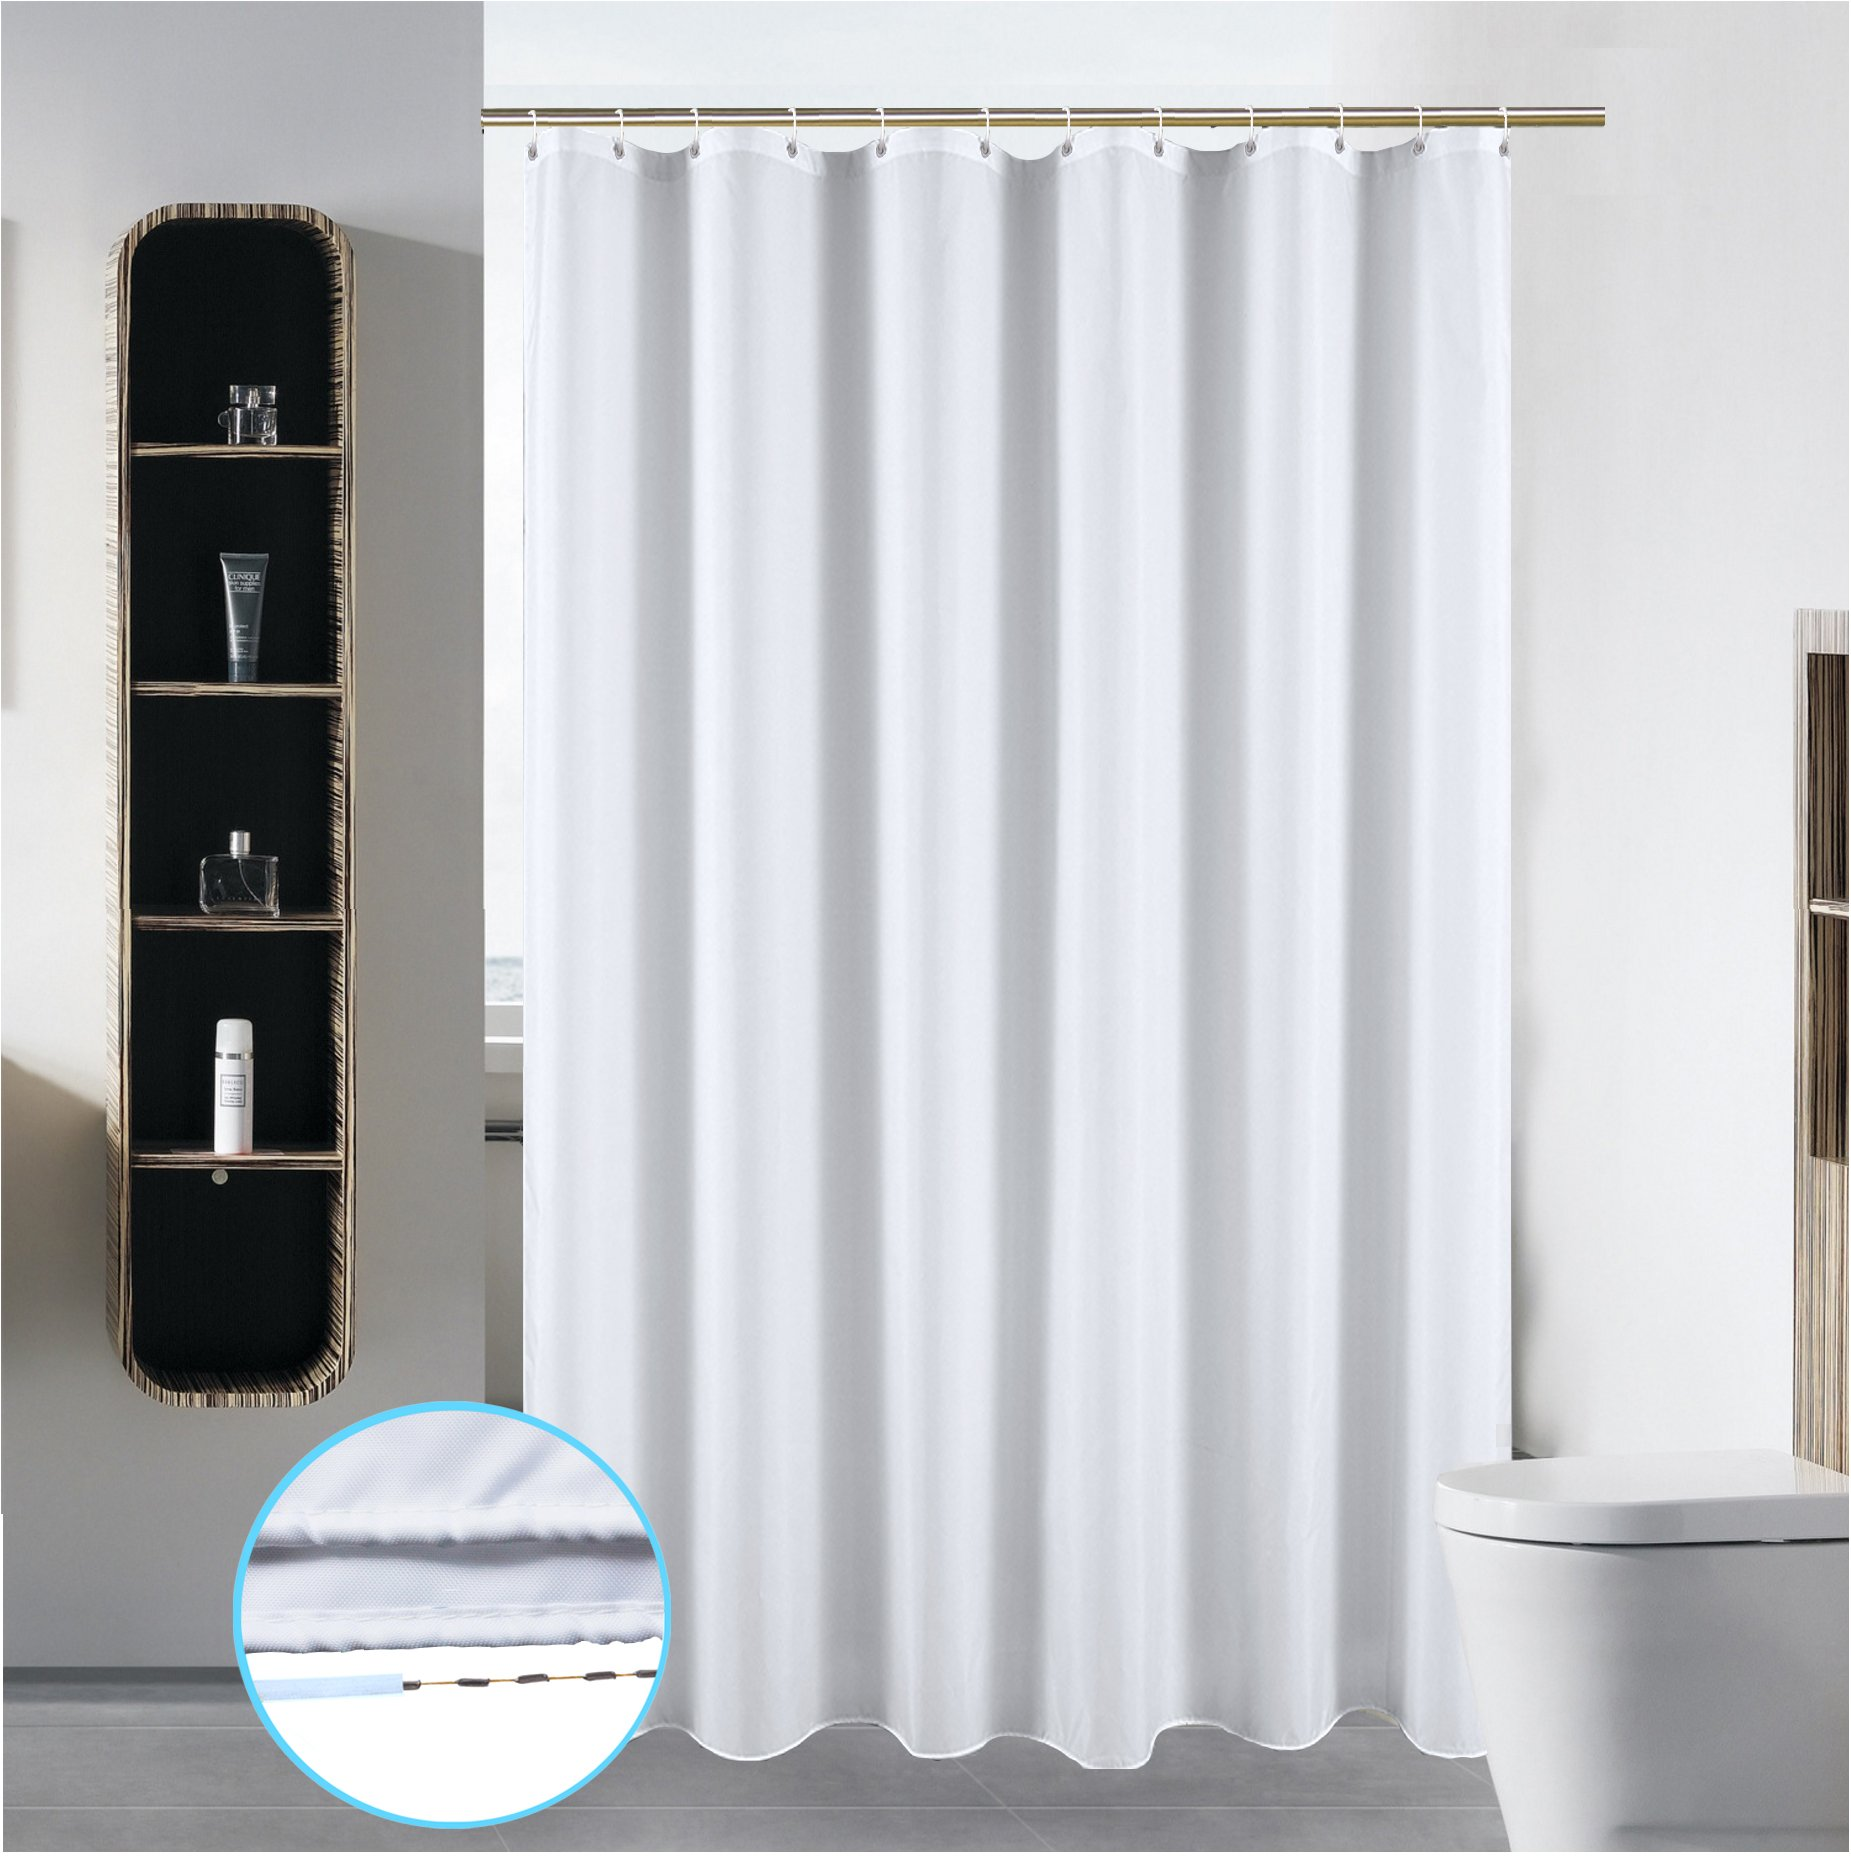 S·Lattye 72 x 72 Bathroom Shower Curtain Liner Water Repellent Fabric Mildew Resistant Washable Polyester (Hotel Quality Eco Friendly Sheer Heavy Duty) with White Plastic Hooks - Standard, Pure White